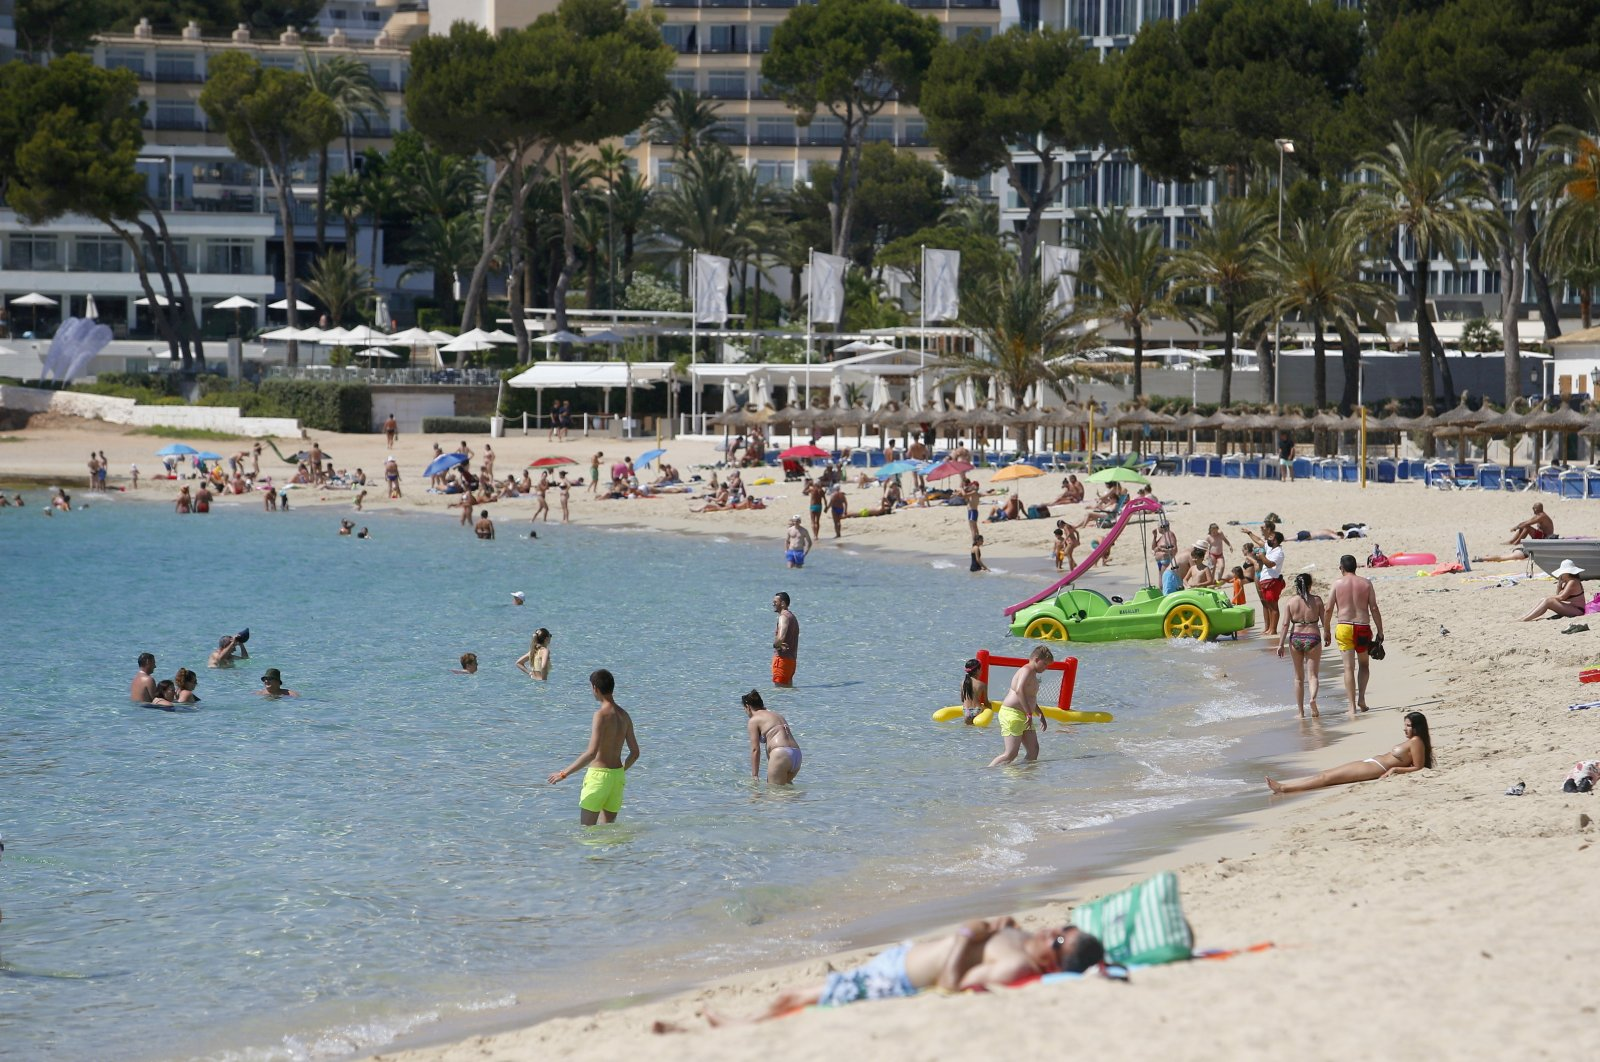 People enjoy themselves at Magaluf beach in Mallorca as British tourists are expected to resume travels to the area starting from June 30th, Spain, June 29, 2021. (Reuters Photo)